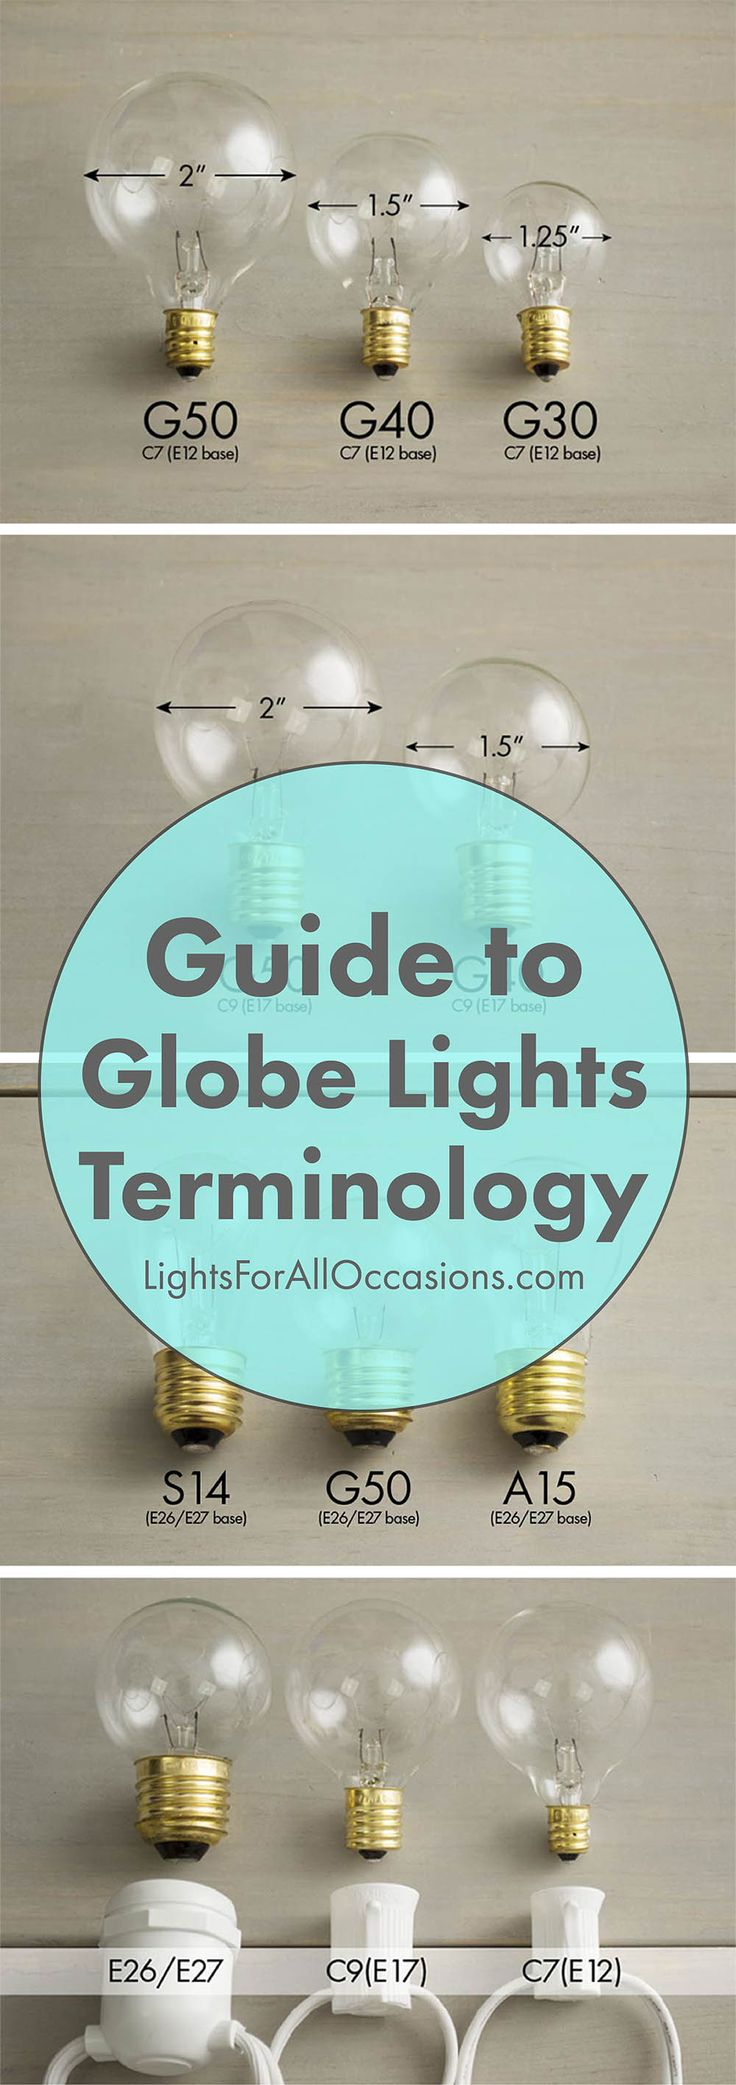 Check out our super informative Guide to Globe Light Terminology! In it we show you the differences between E12 and E17 bulb bases, G40 and G50 bulb sizes, and C7 and C9 string light strands.